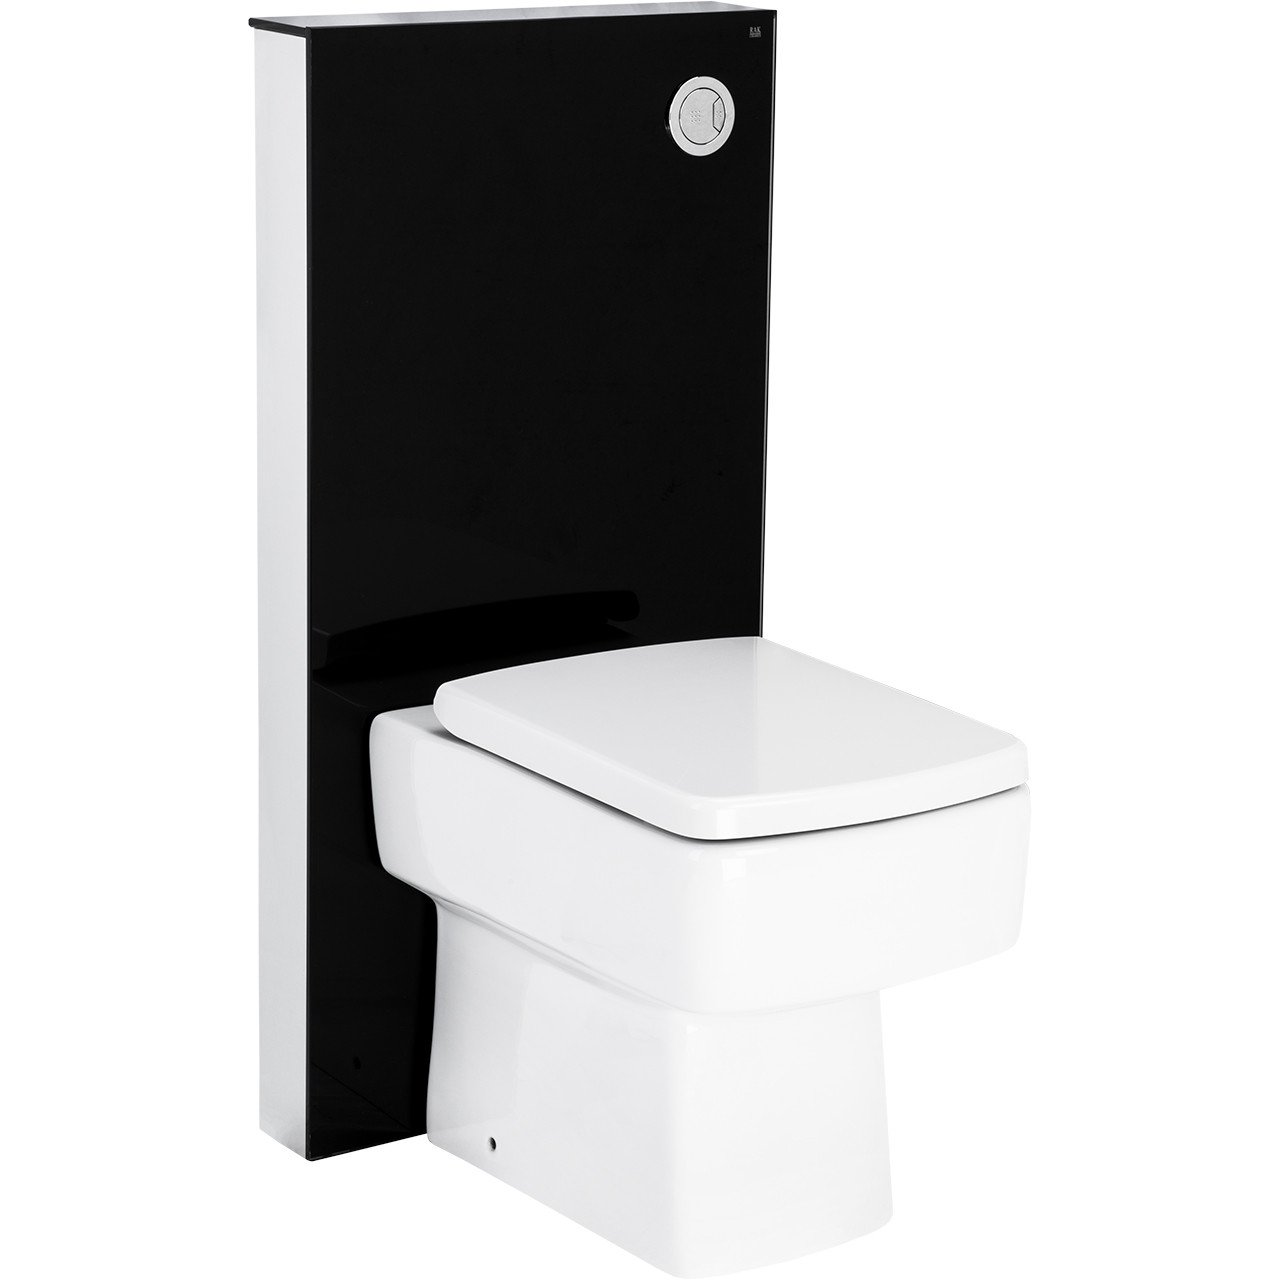 Crystal Obelisk Floor Standing Cistern Cabinet for BTW Pan in Black